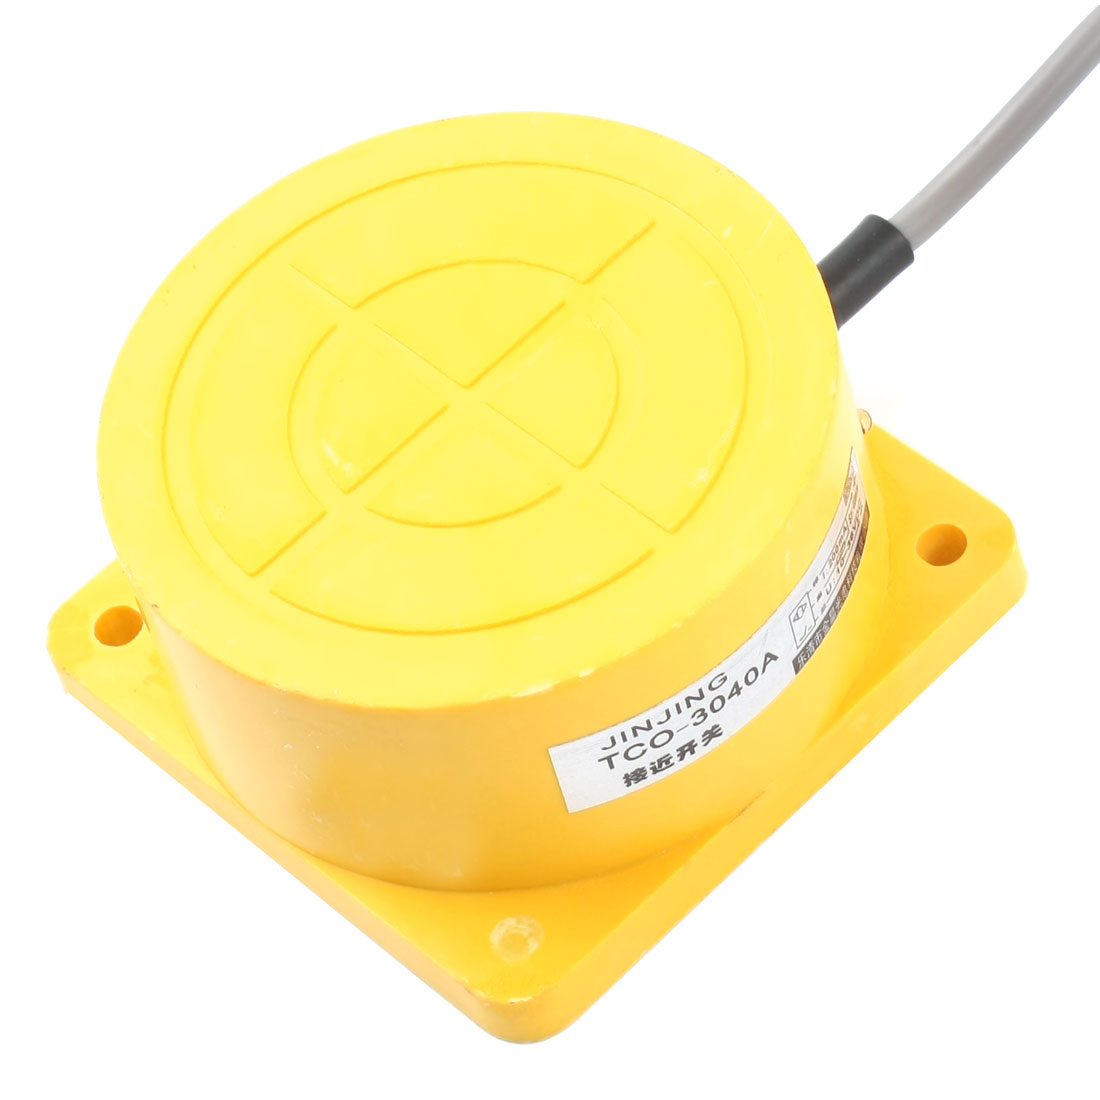 TCO-3040A NPN 40mm Detection Distance Inductive Sensor Proximity Switch